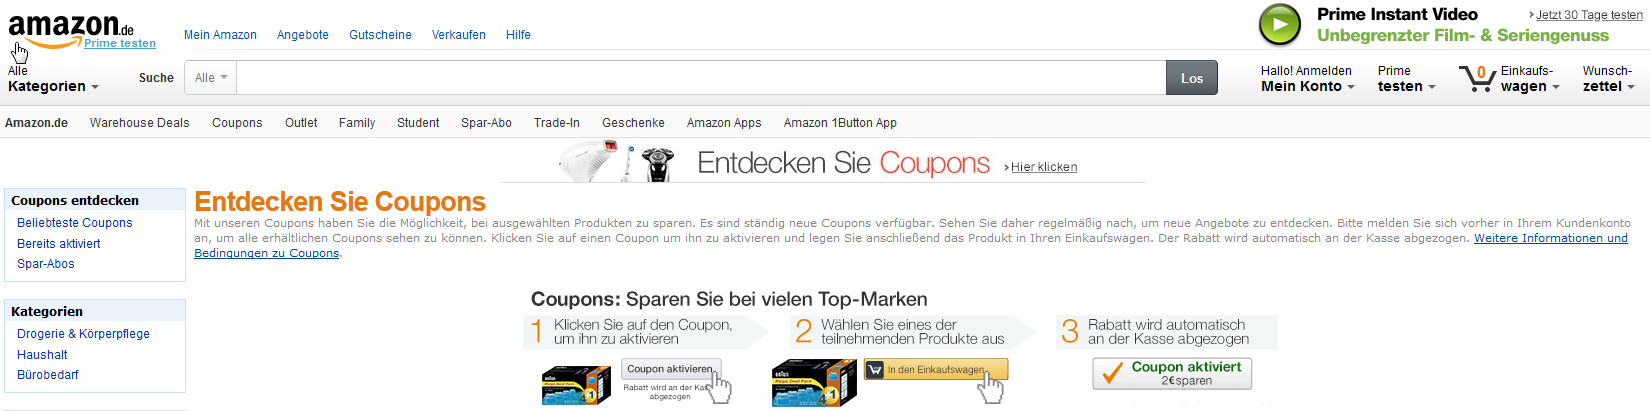 2015_04_14_10_06_54_Amazon.de_Coupons